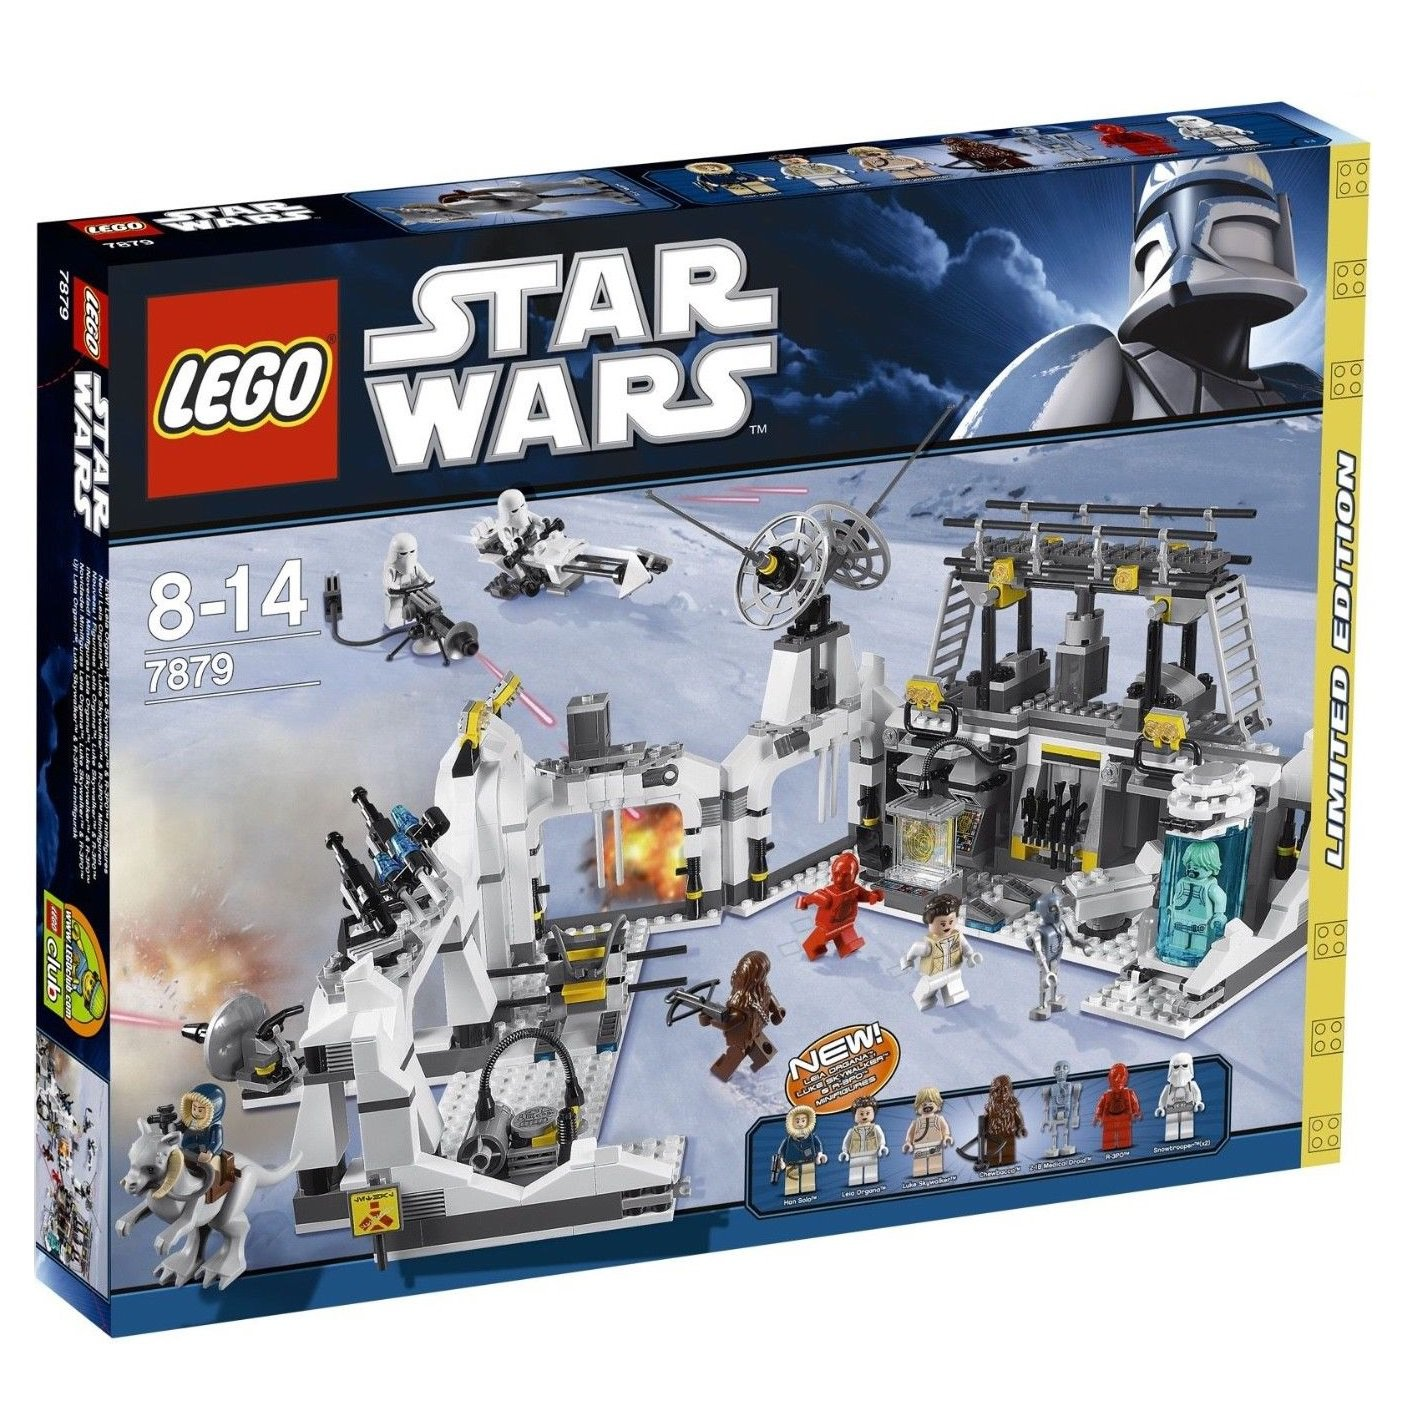 7879 Lego Star Wars Hoth Echo Base